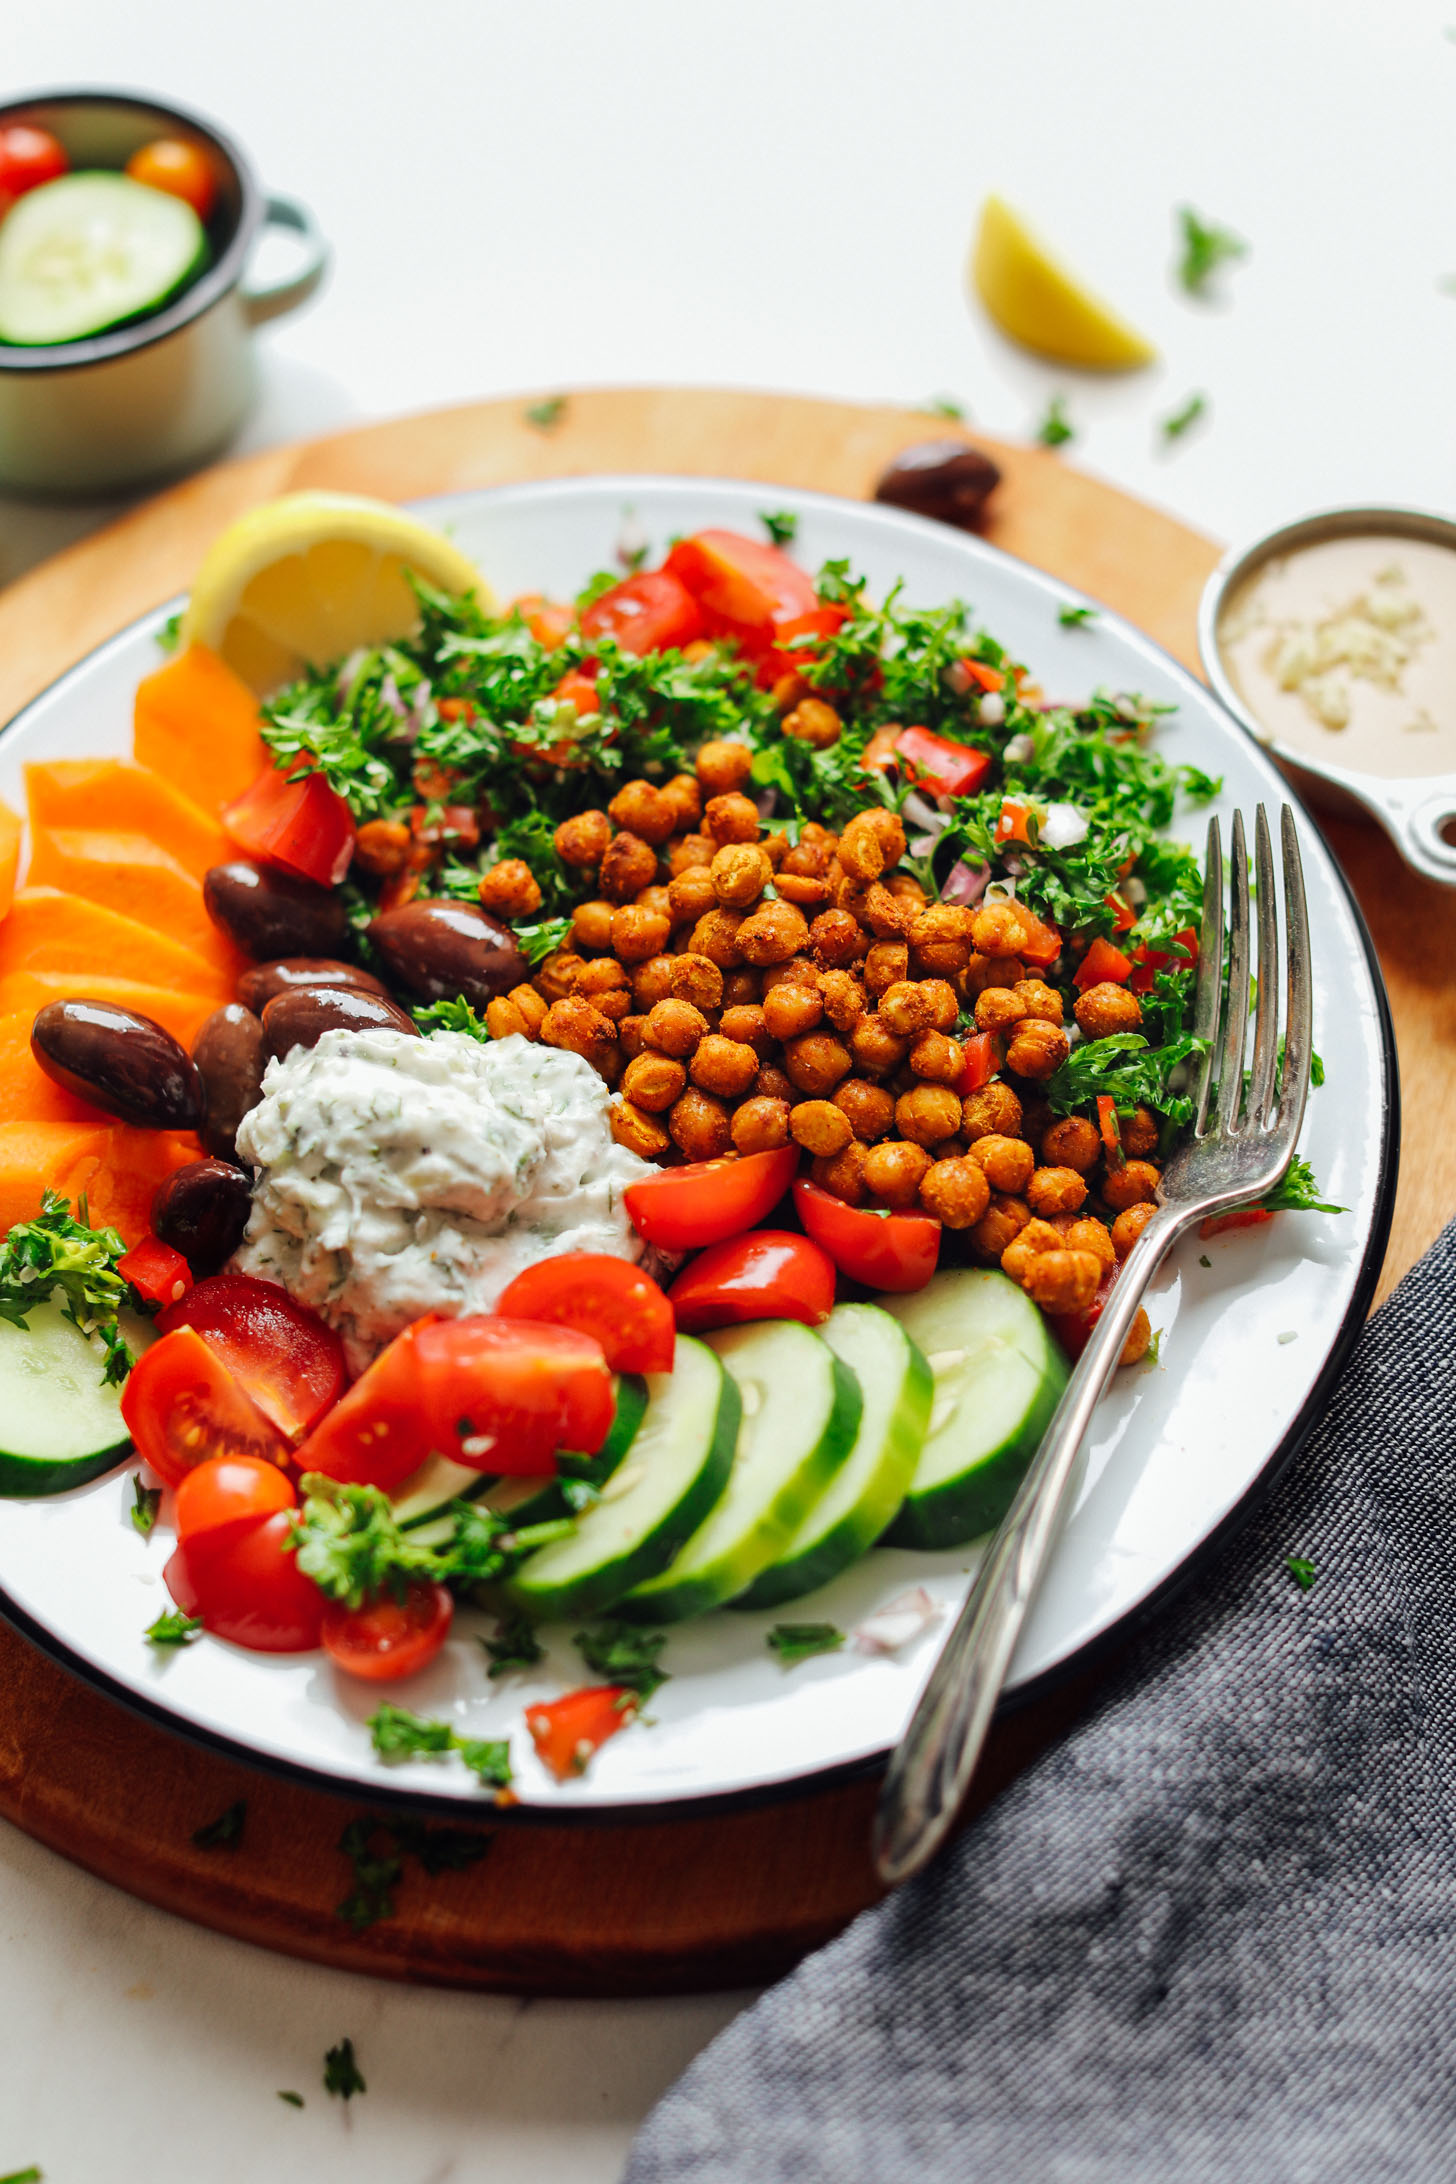 Close up shot showing the colorful ingredients in our Vegan Greek Bowl with Crispy Chickpeas, Vegan Tzatziki, and Veggies